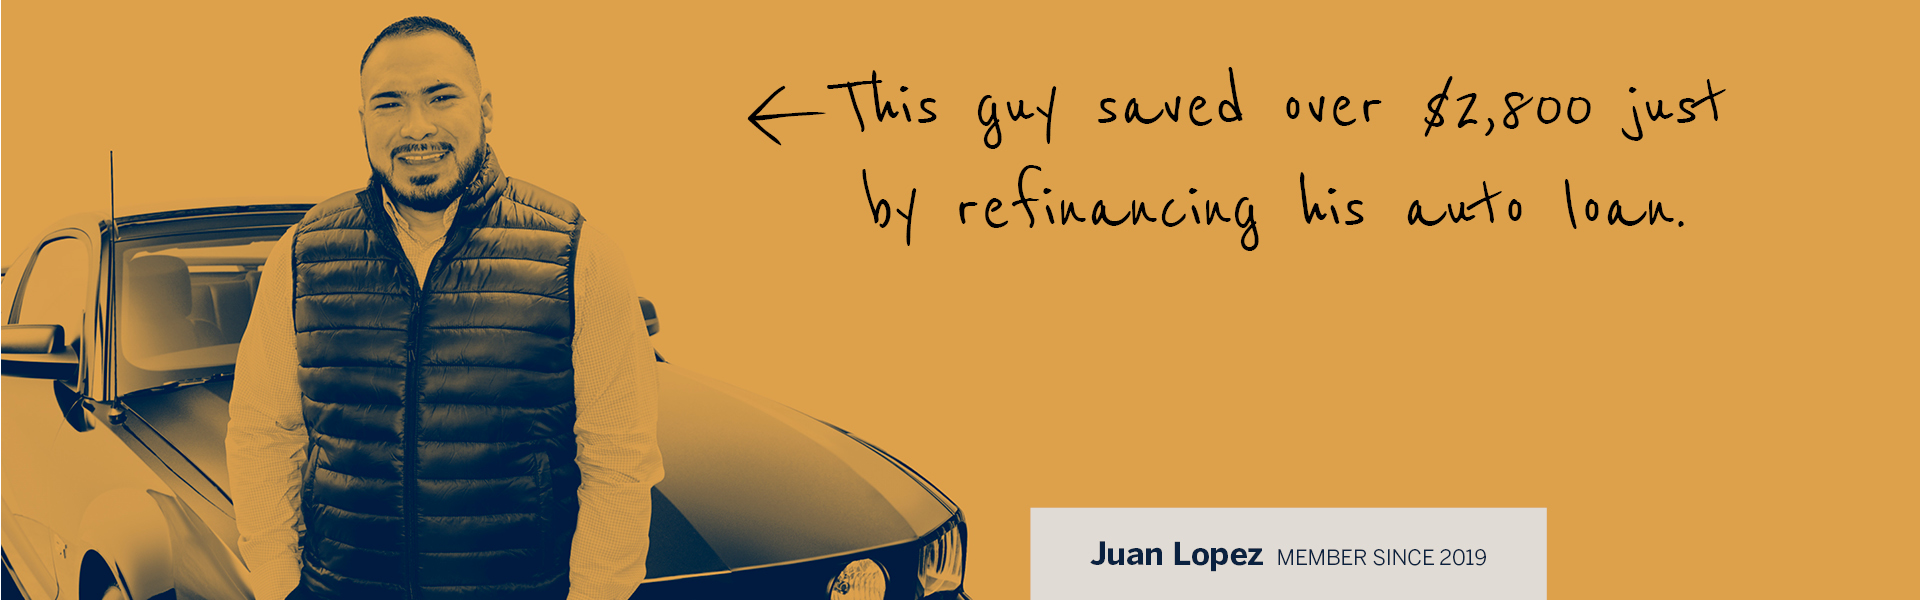 This guy saved over $2800 just by refinancing his auto loan. Juan Lopez, member since 2019